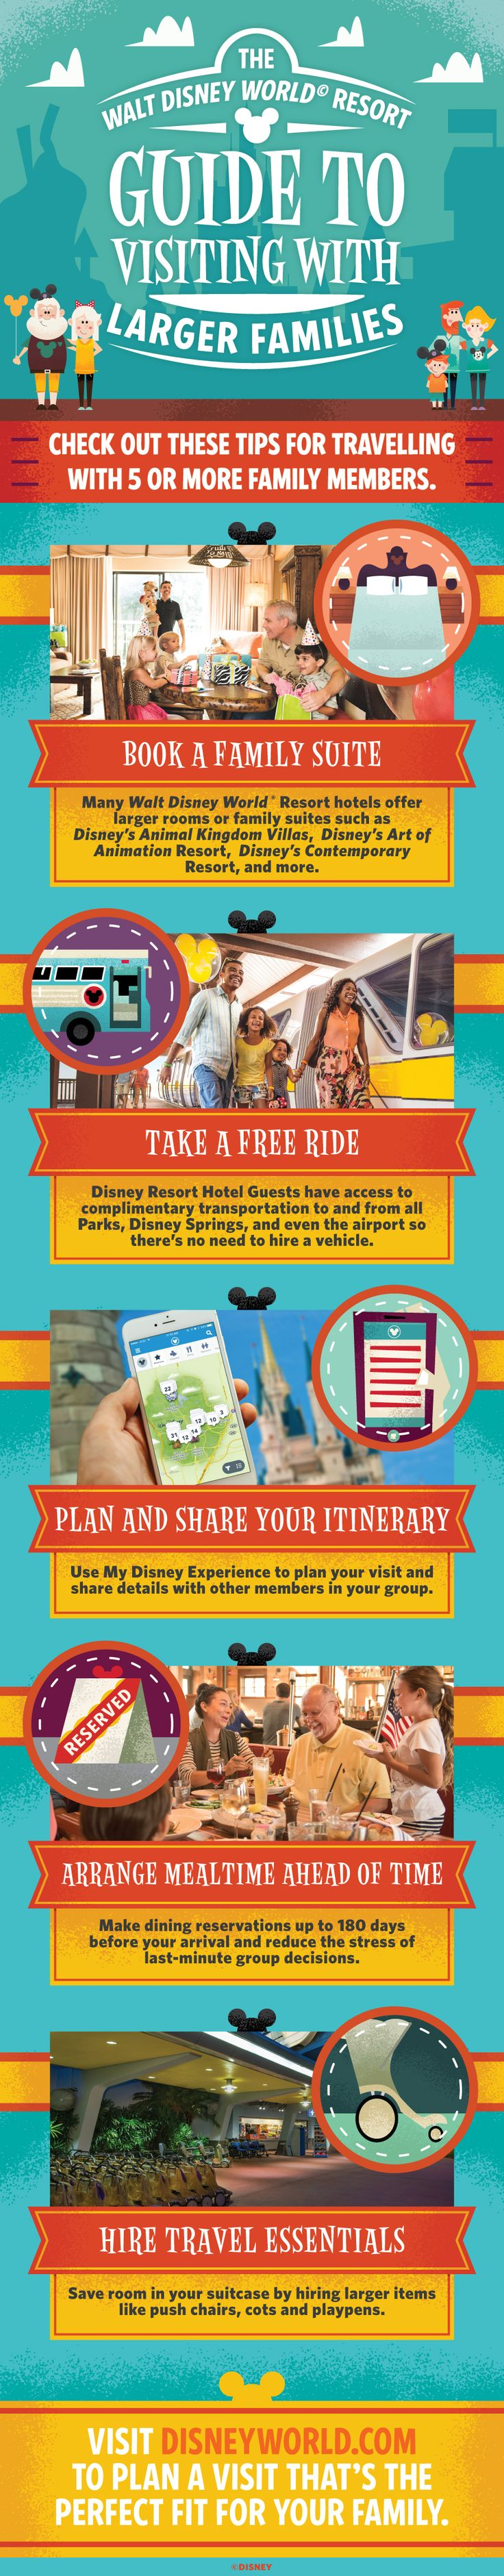 From enjoying family suite's to making dining reservations well in advance, check out our top tips guide to planning the perfect Walt Disney World holiday for a family of 5 or more!